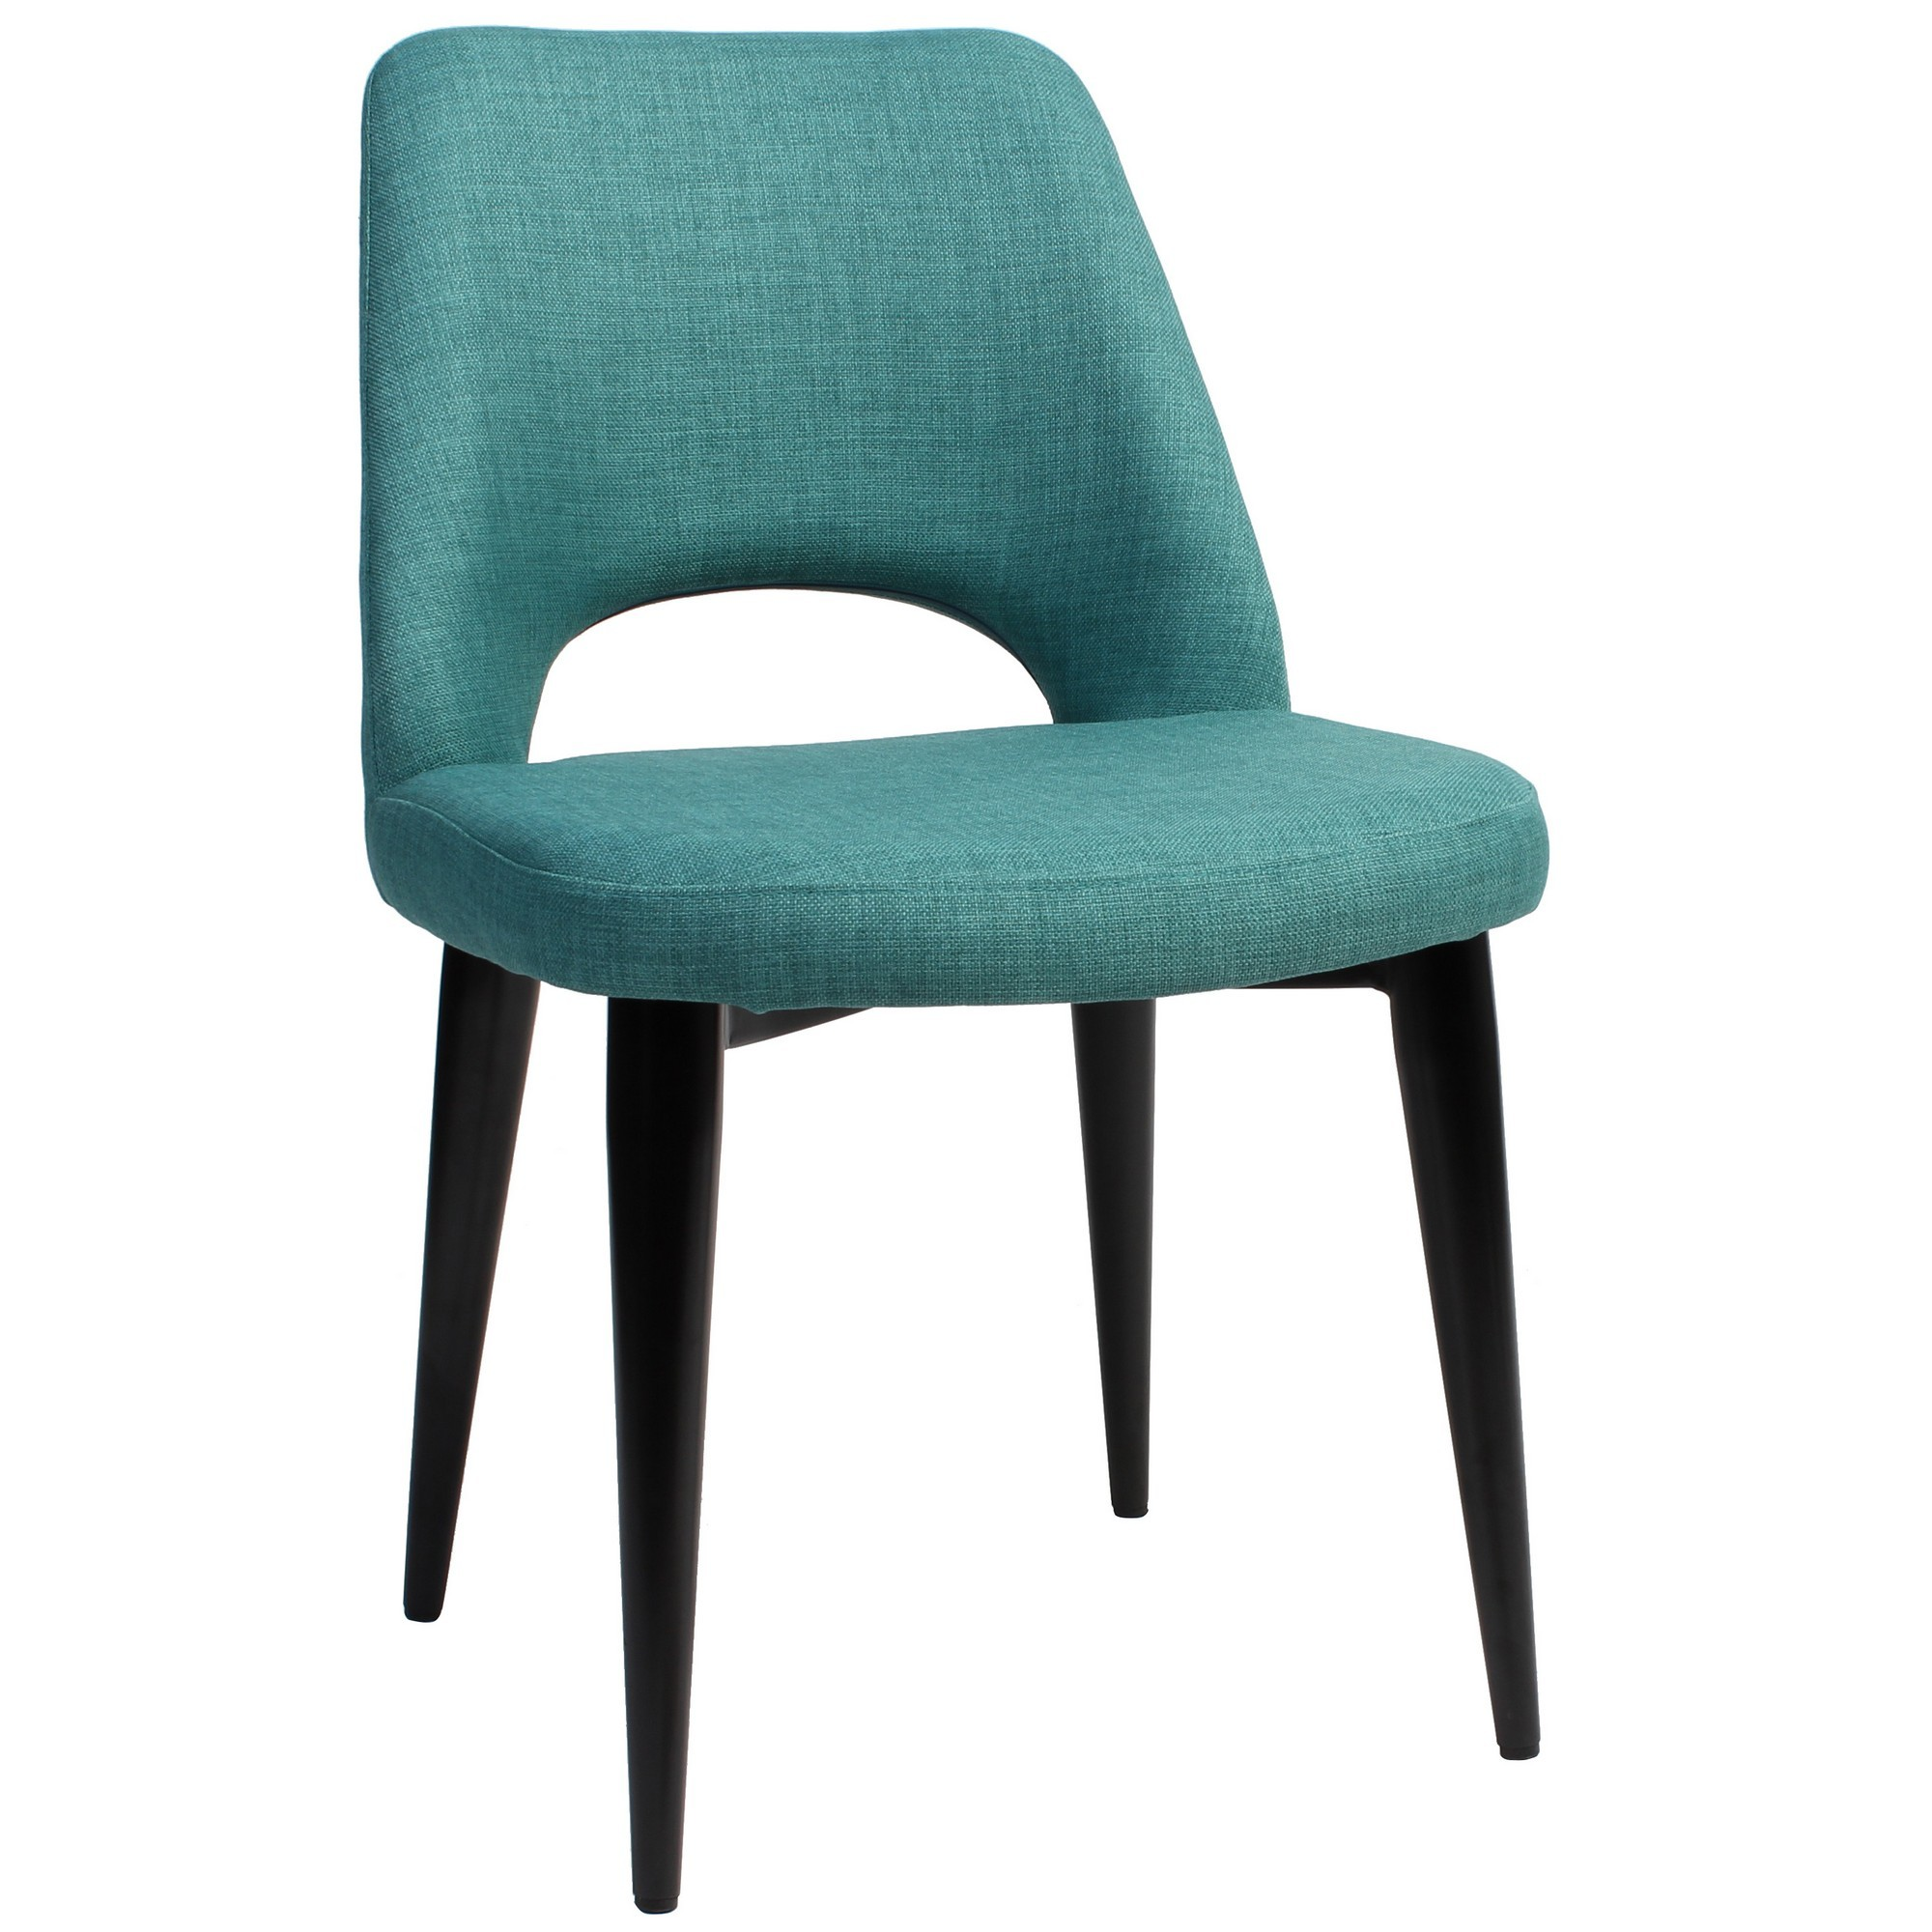 Albury Commercial Grade Fabric Dining Chair, Metal Leg, Teal / Black